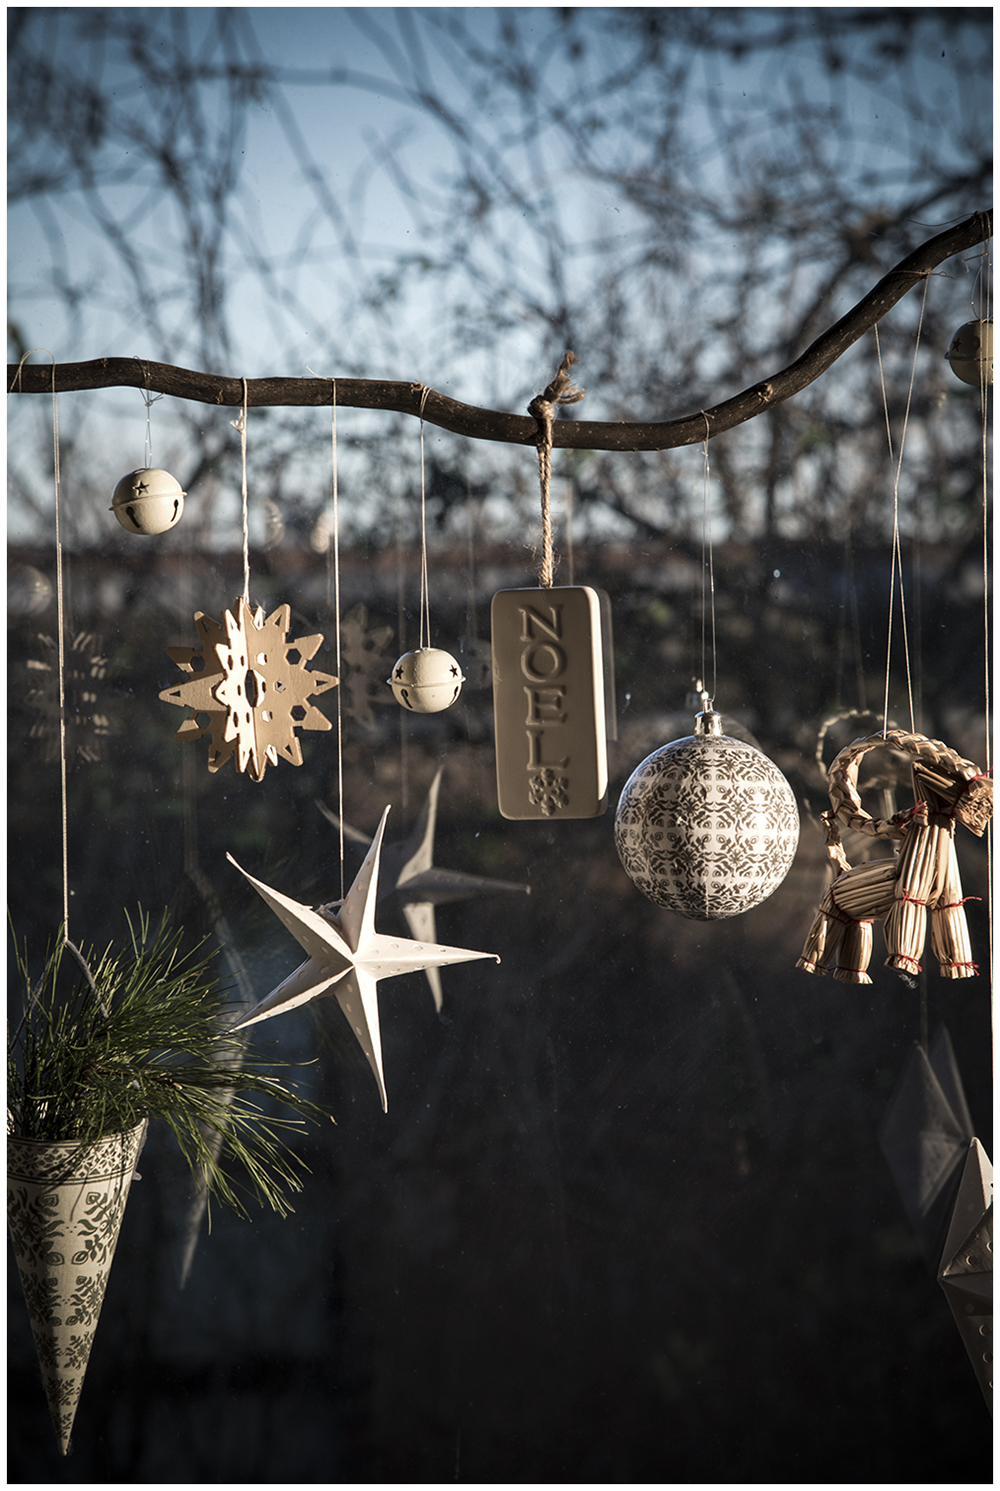 Christmas decorations and winter sunshine